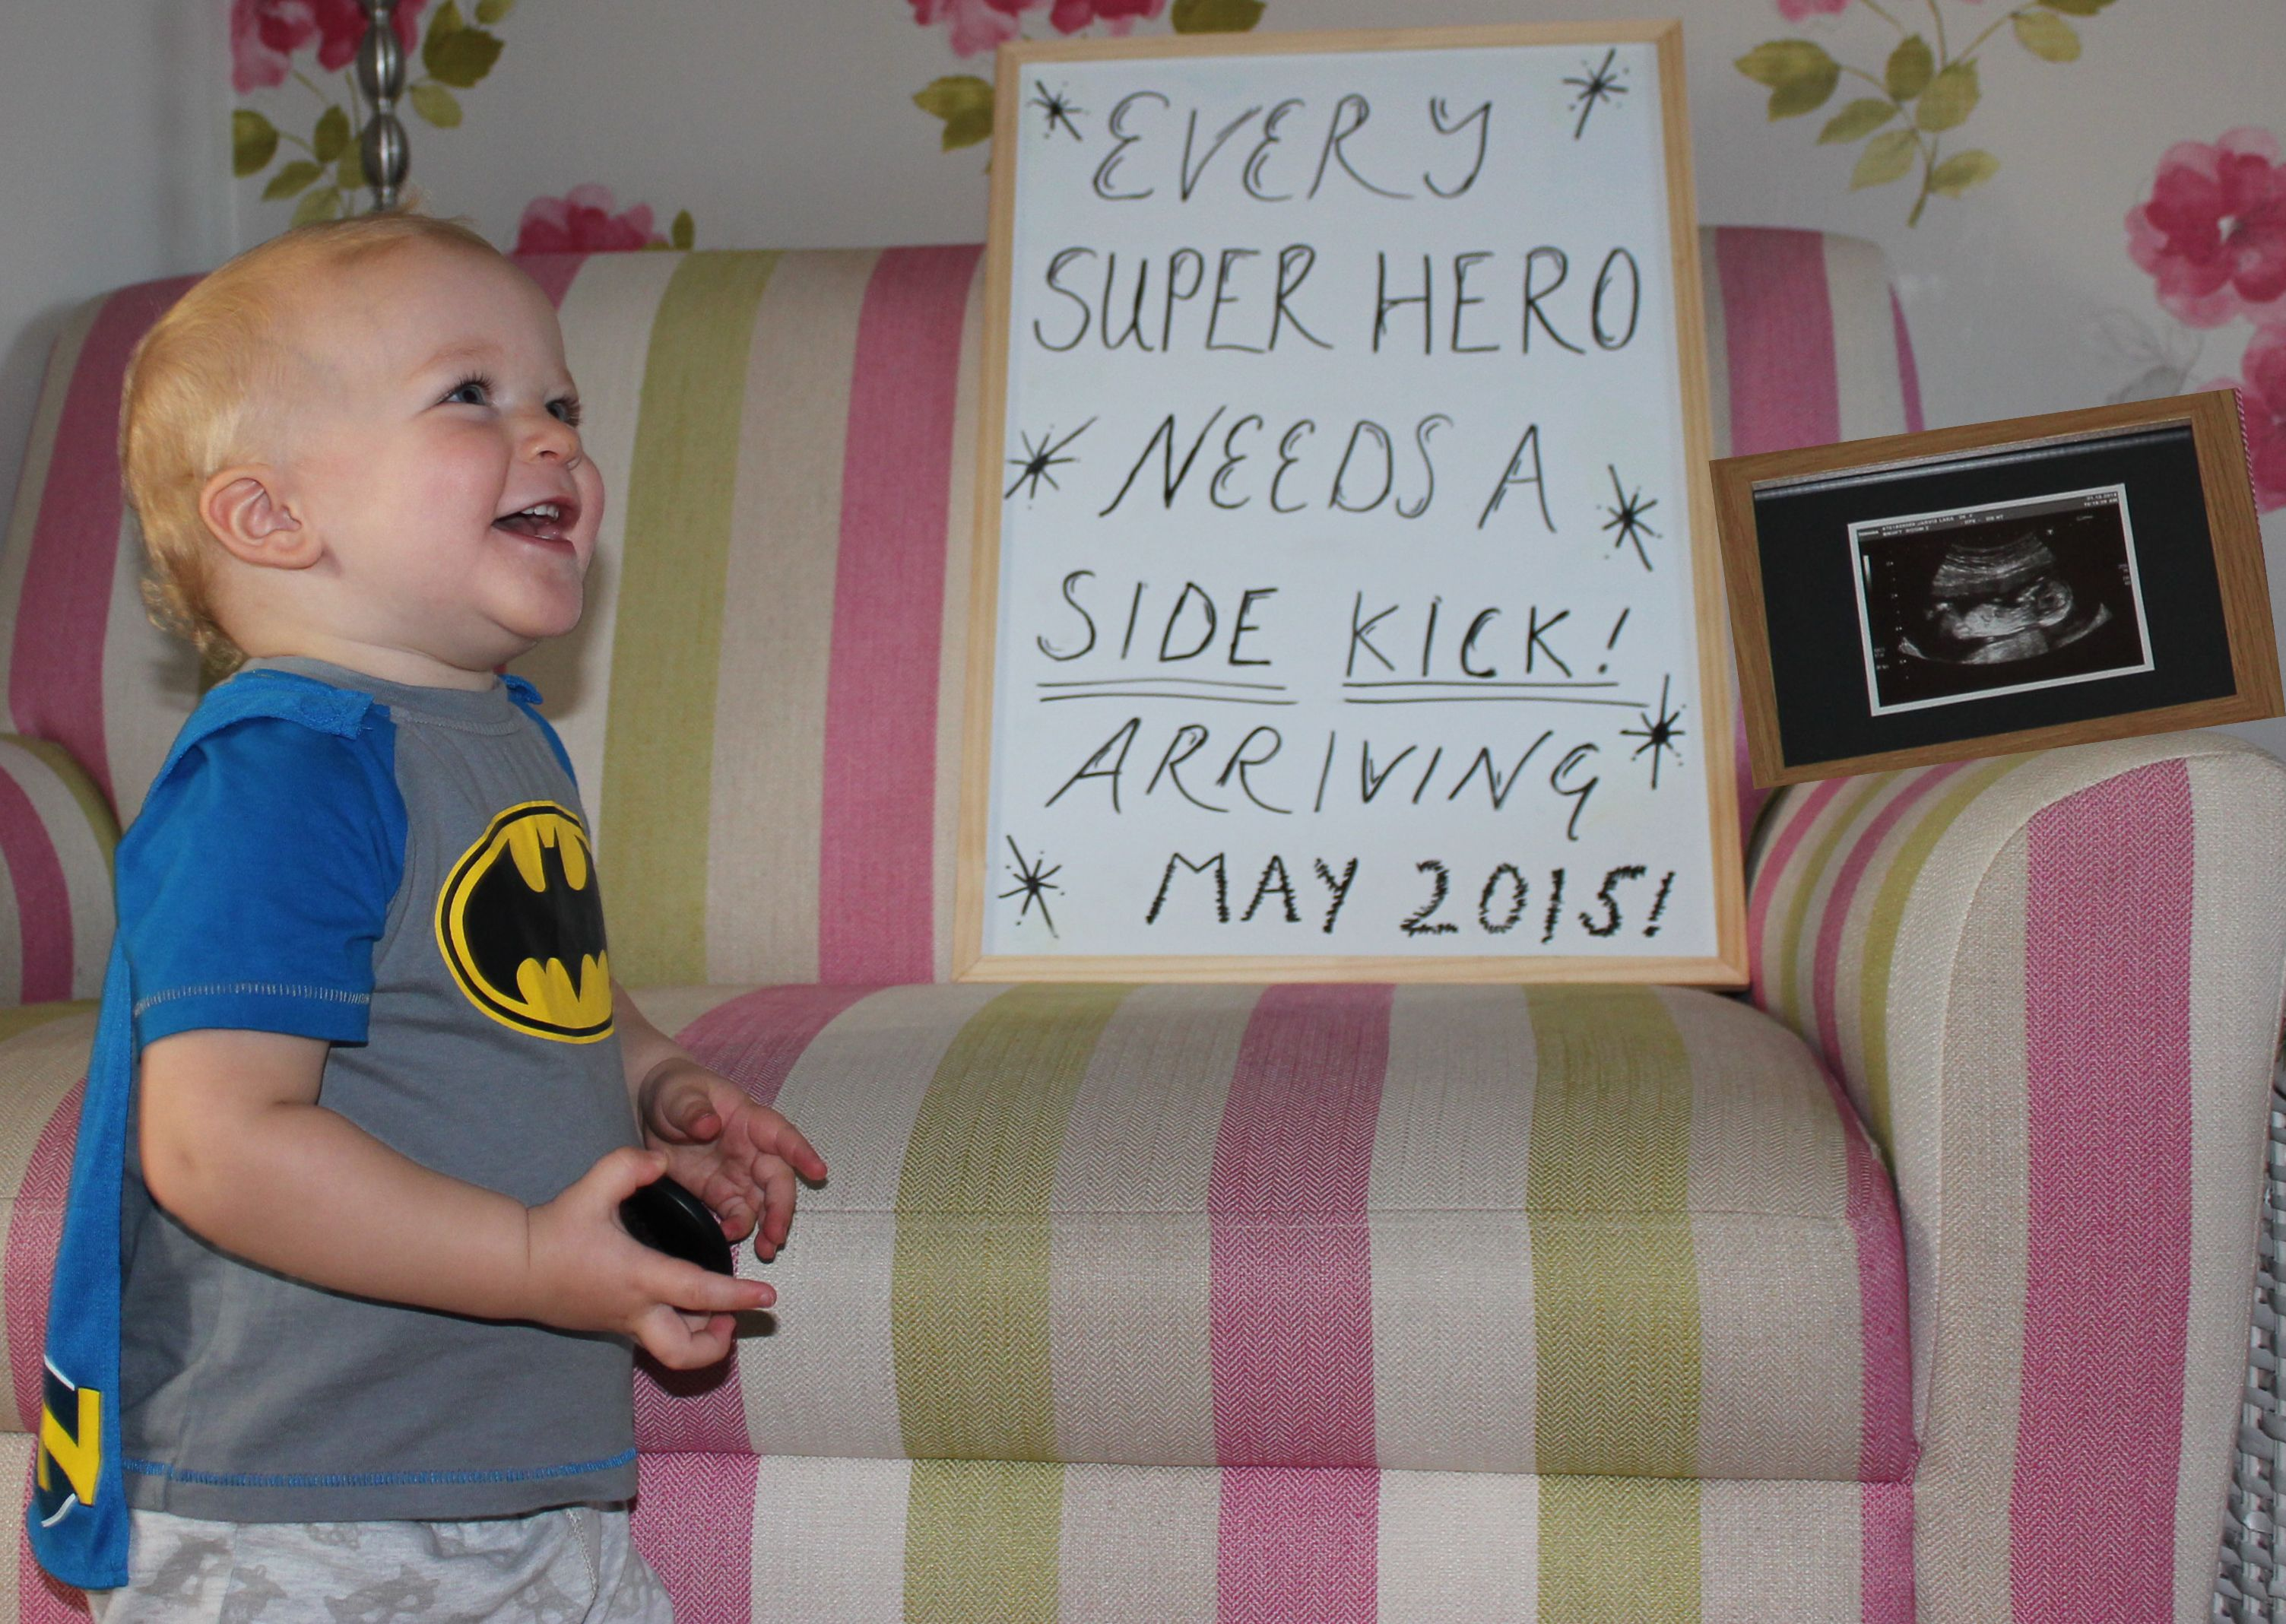 New baby announcement, big brother announcement :)